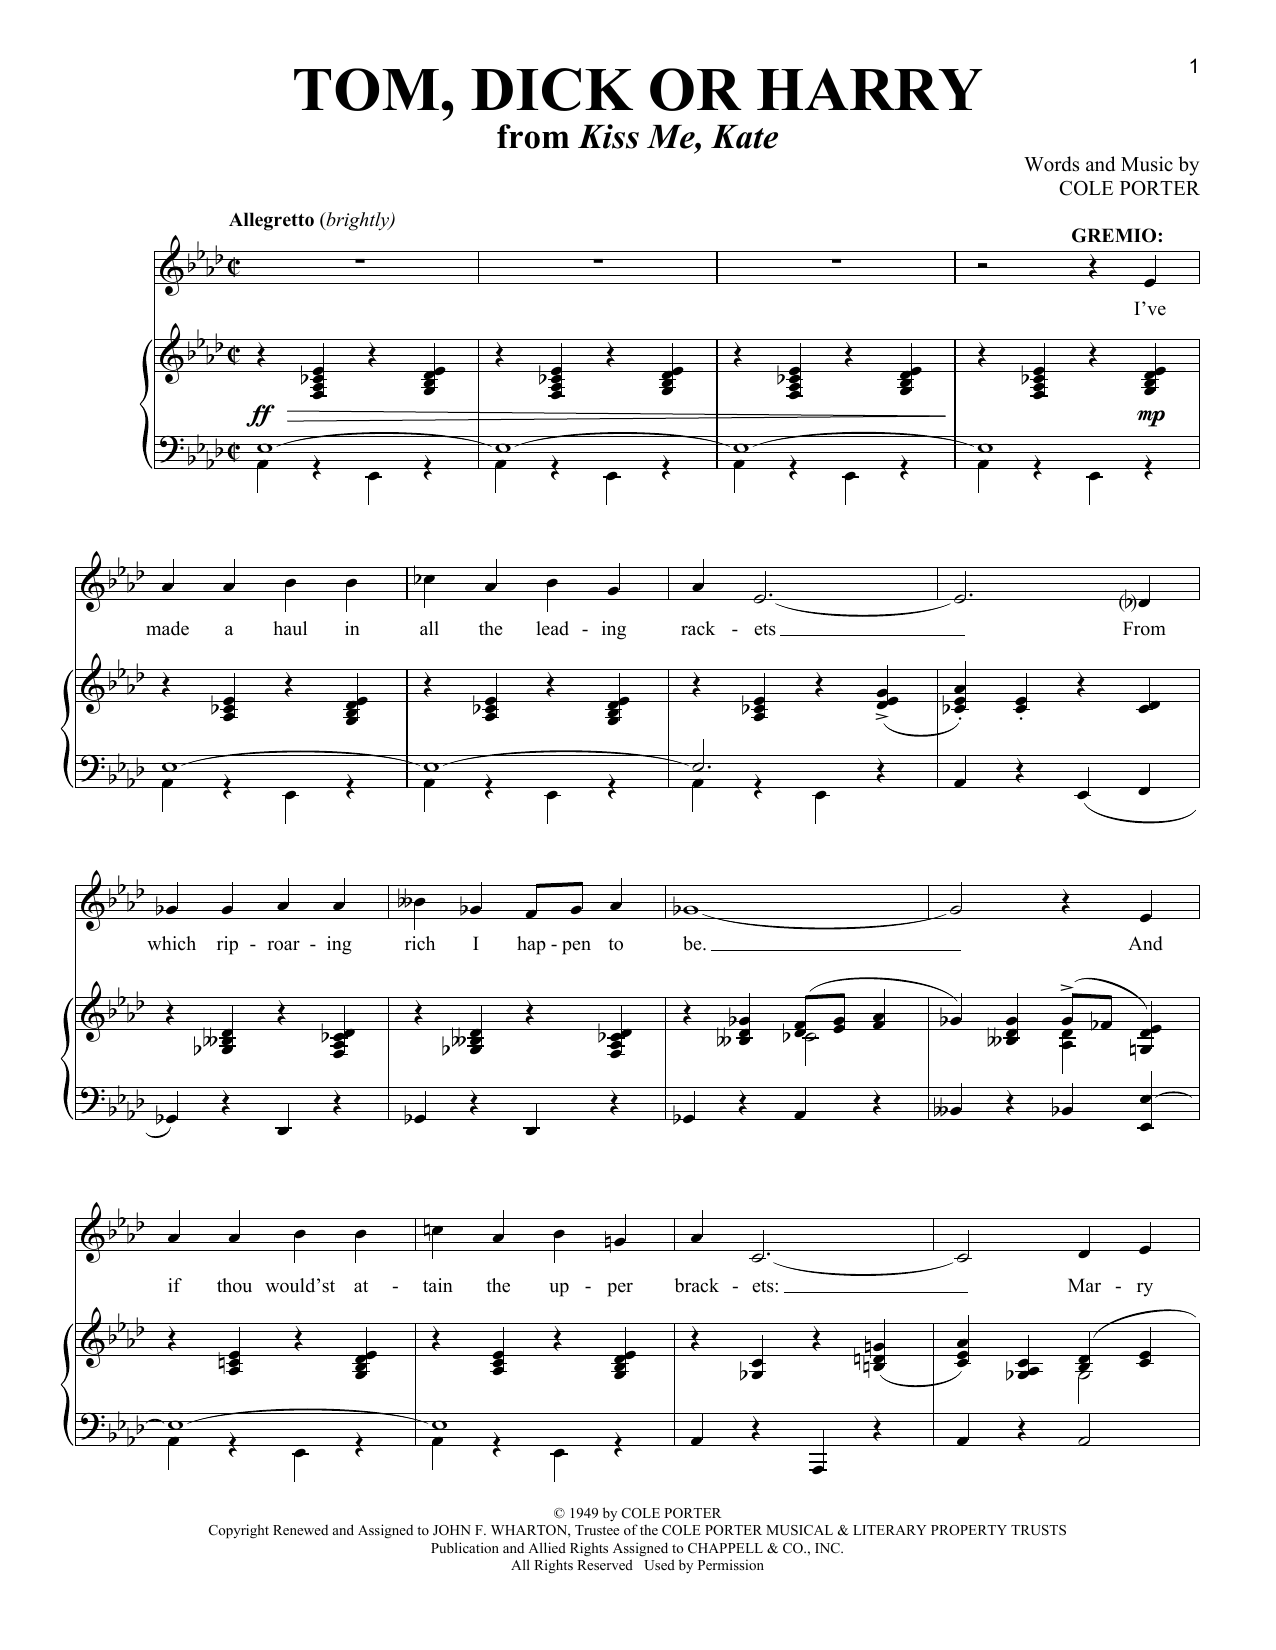 Cole Porter Tom, Dick Or Harry (from Kiss Me, Kate) sheet music notes and chords. Download Printable PDF.